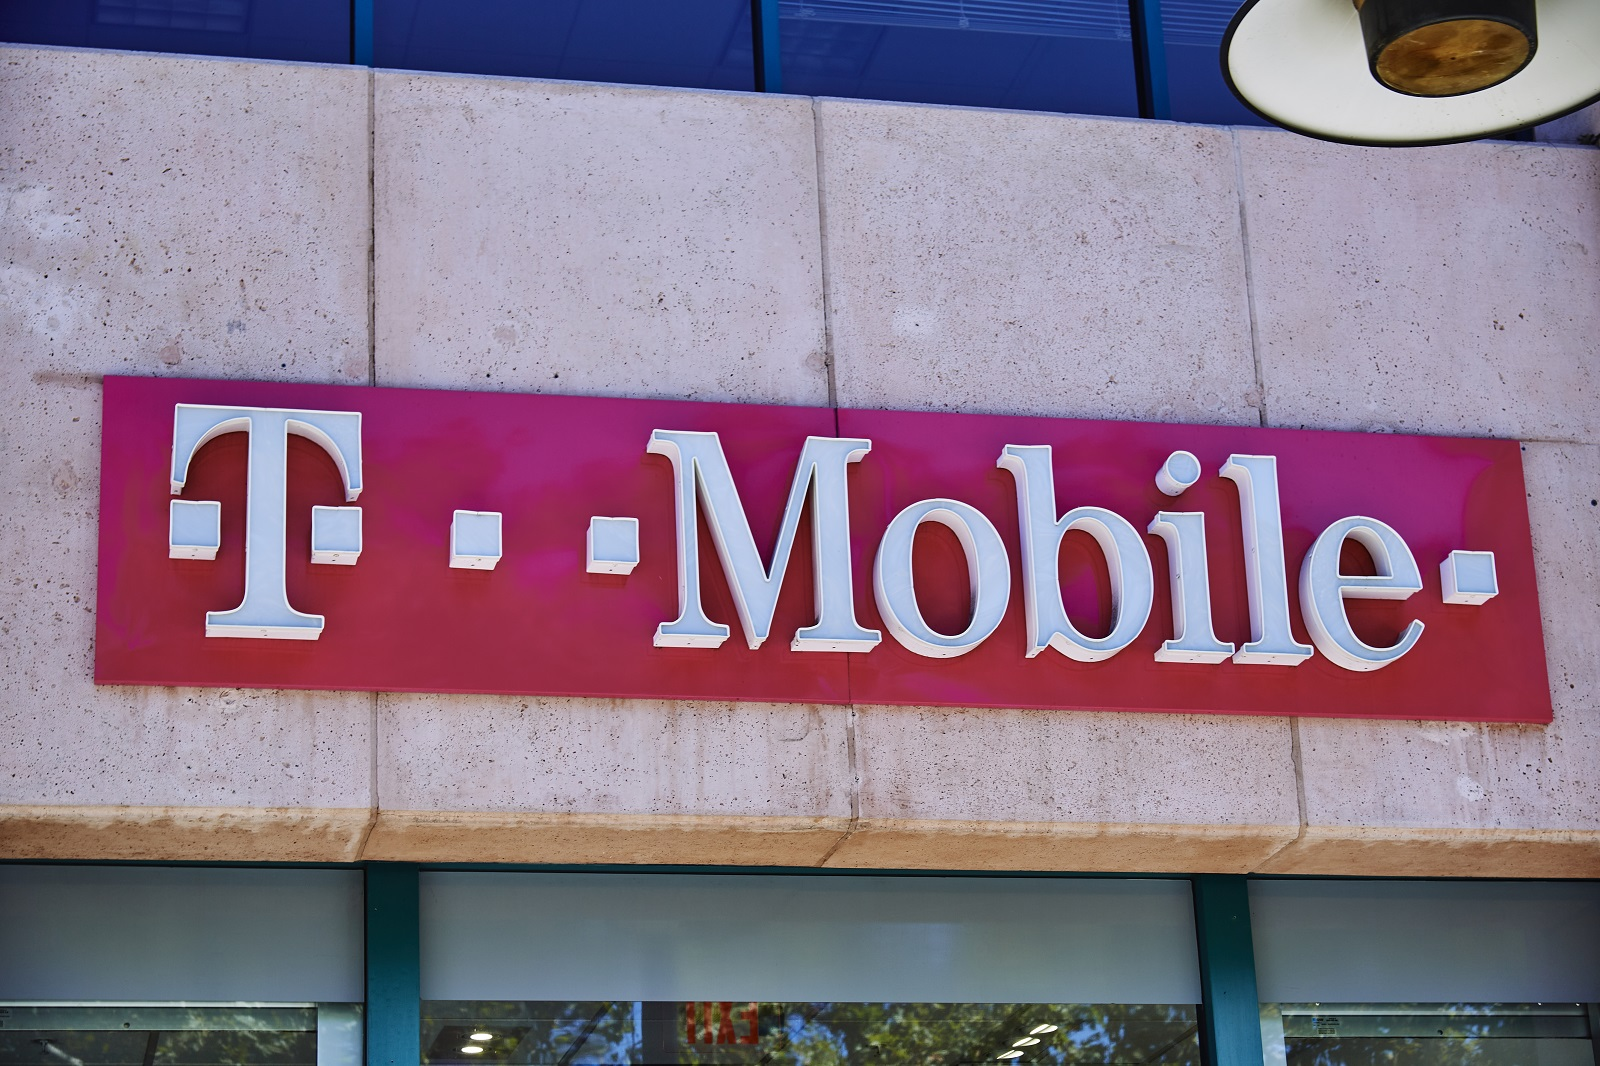 If you're a T-Mobile customer, you might want to check out the latest update to the carrier's privacy policy. As spotted by The Wall Street Journa